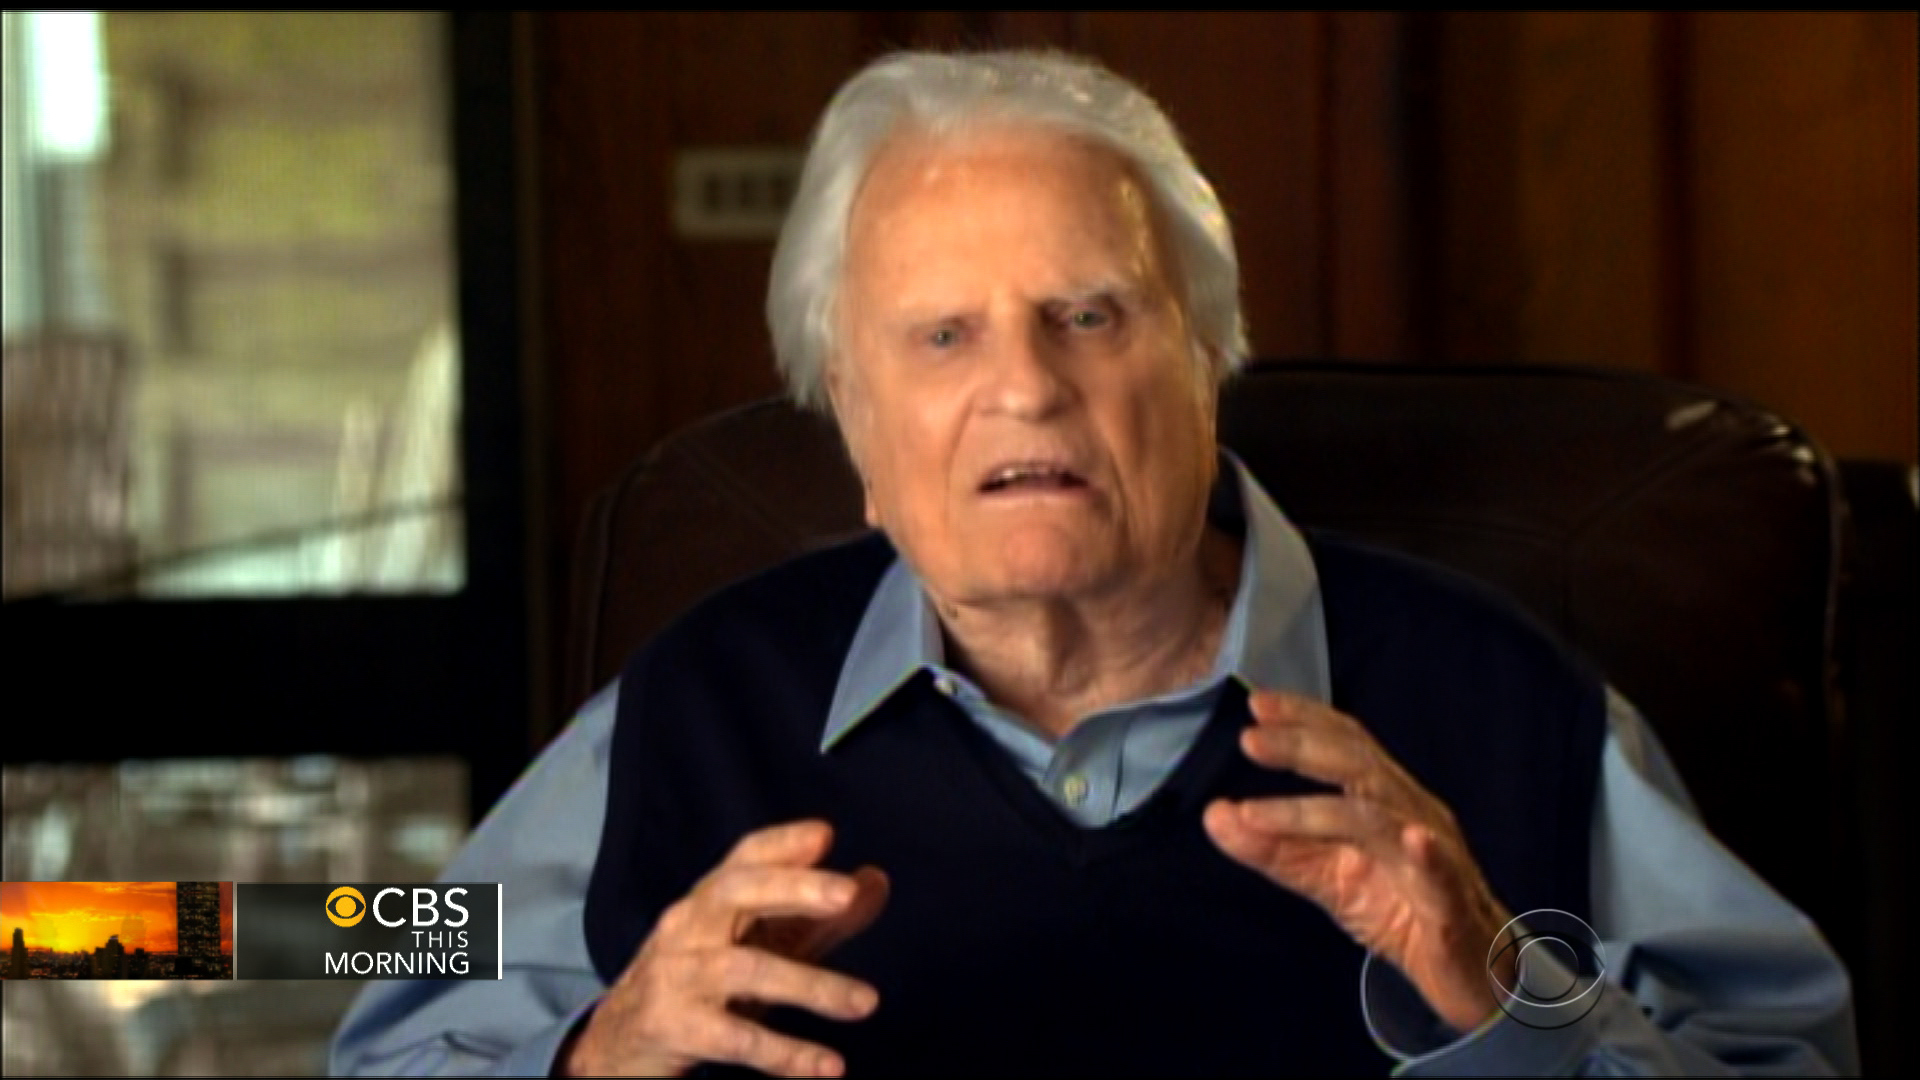 Billy Graham delivers what may be his final sermon - CBS News